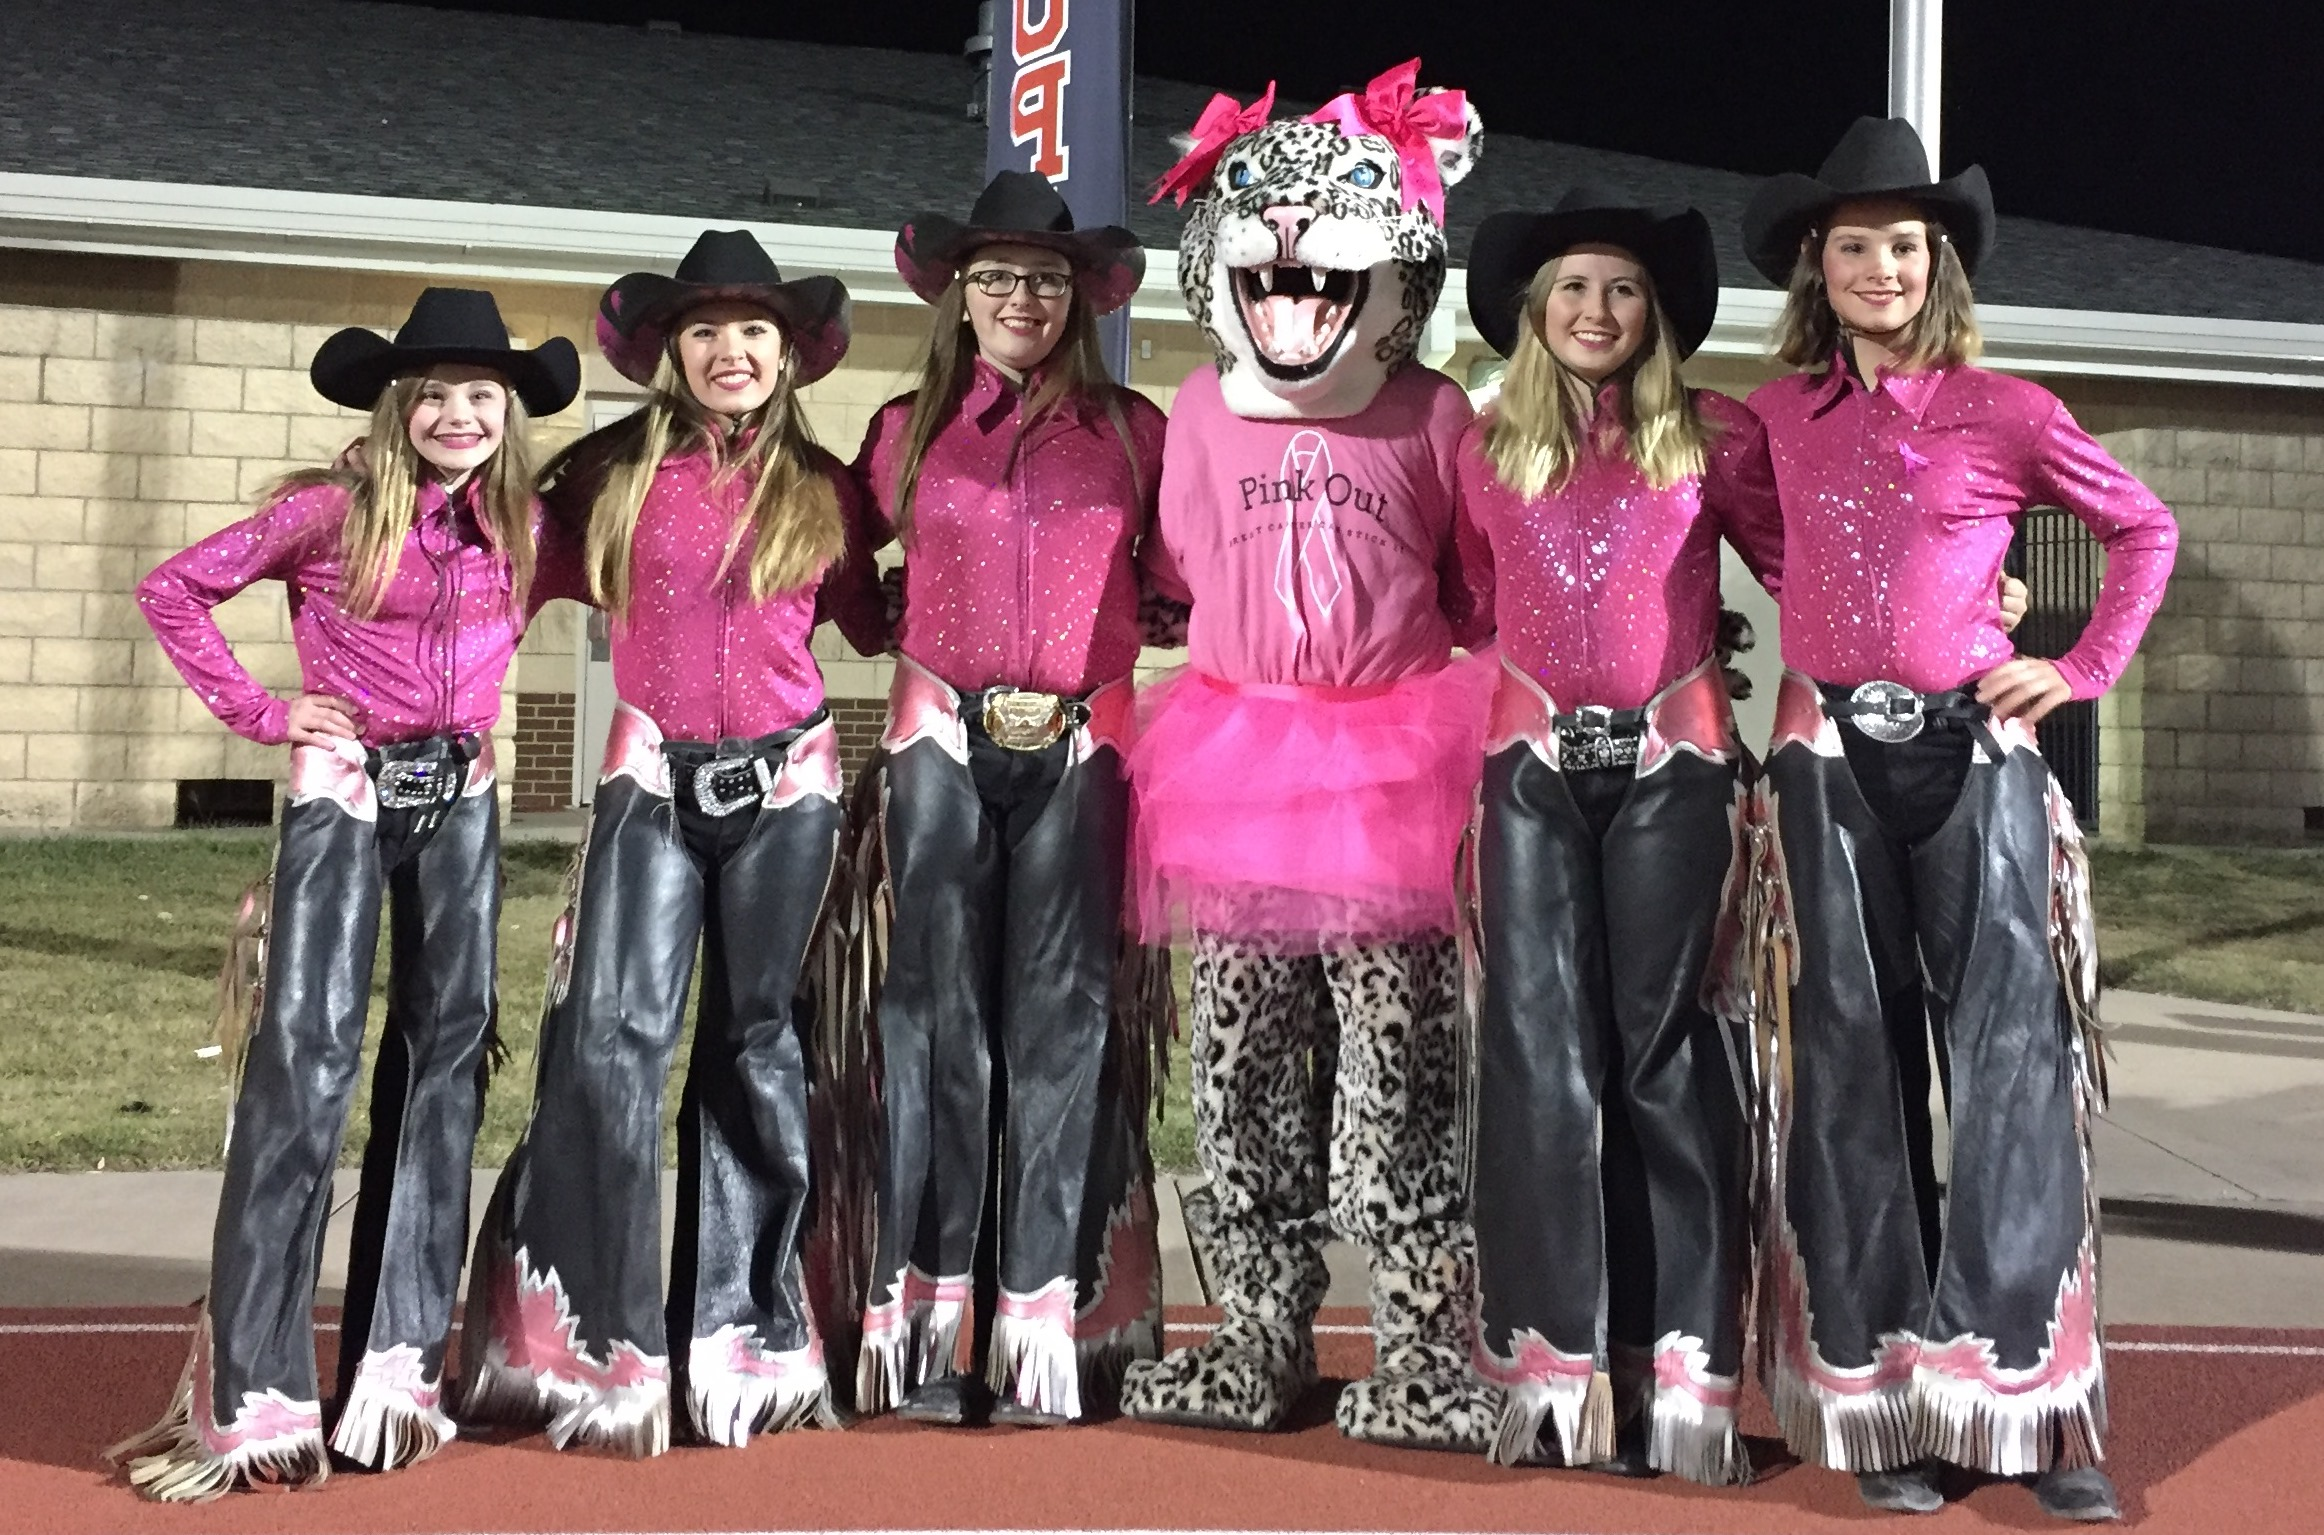 Members of the Woodhaven Wranglers at the Lovejoy High School Pink Out football game. (l to r) Sarah Muckelroy, Taylor Braun, Sierra Stammen, Casey Perkins and Clementine Brown.